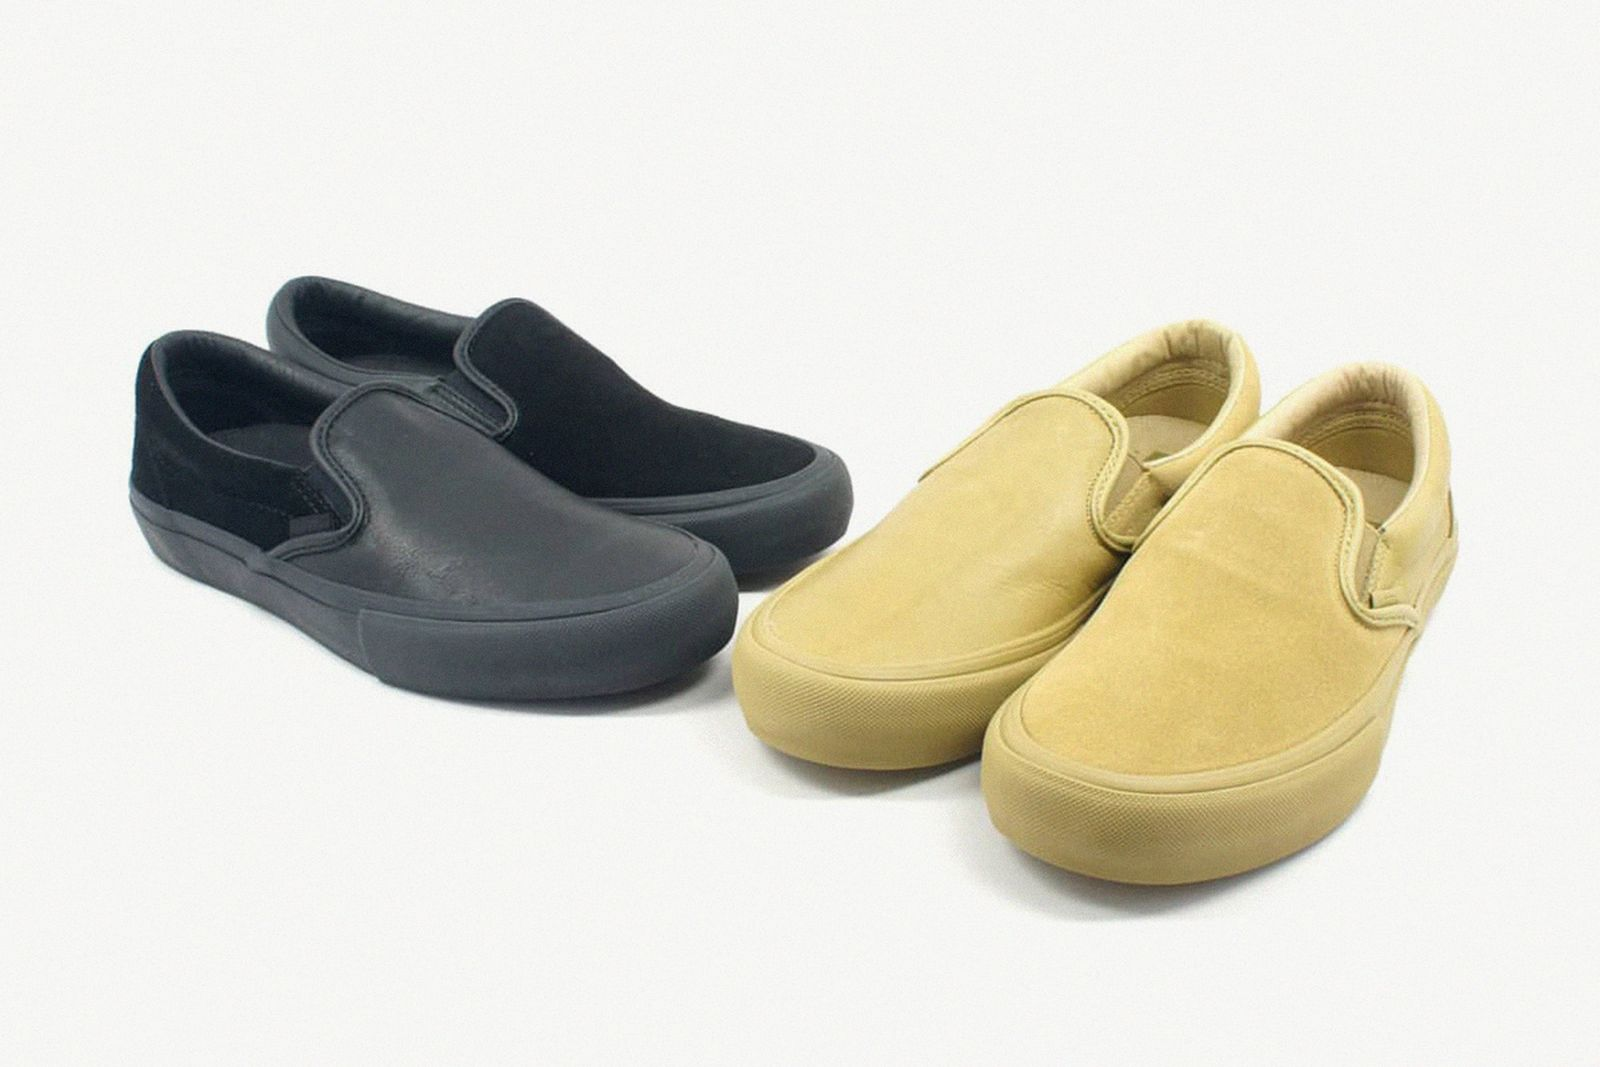 vans nepenthes engineered garments